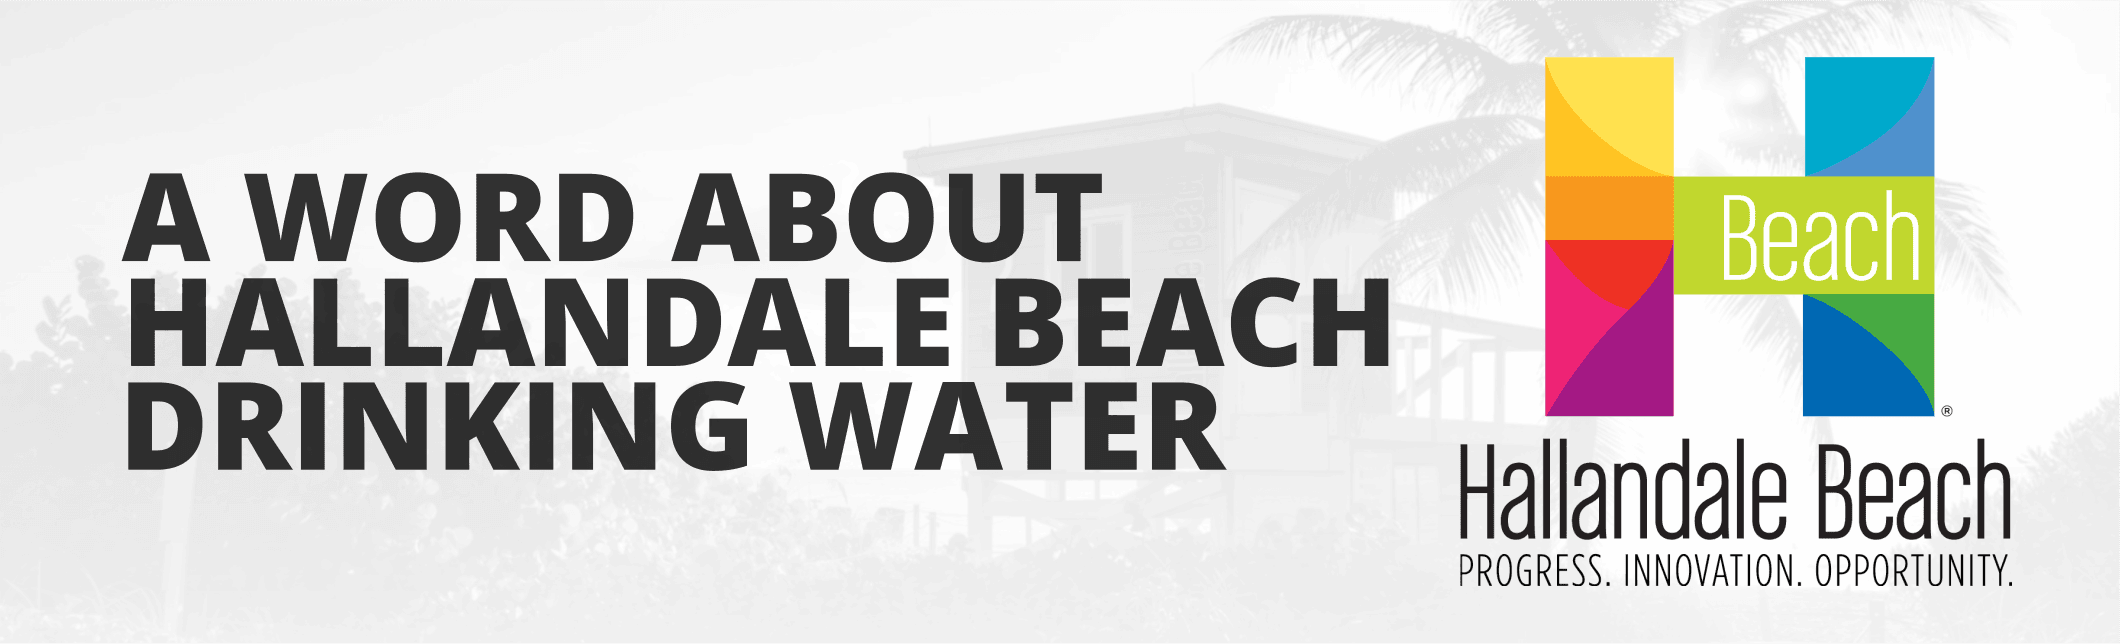 A WORD ABOUT HALLANDALE BEACH DRINKING WATER